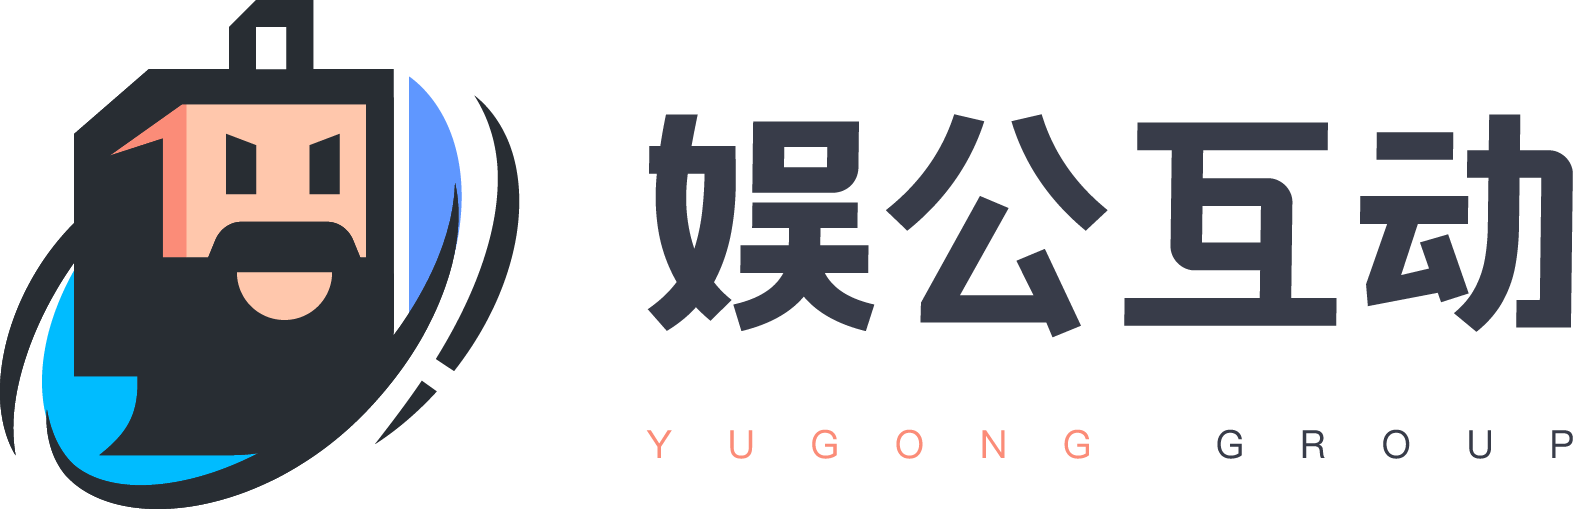 yugonggroup